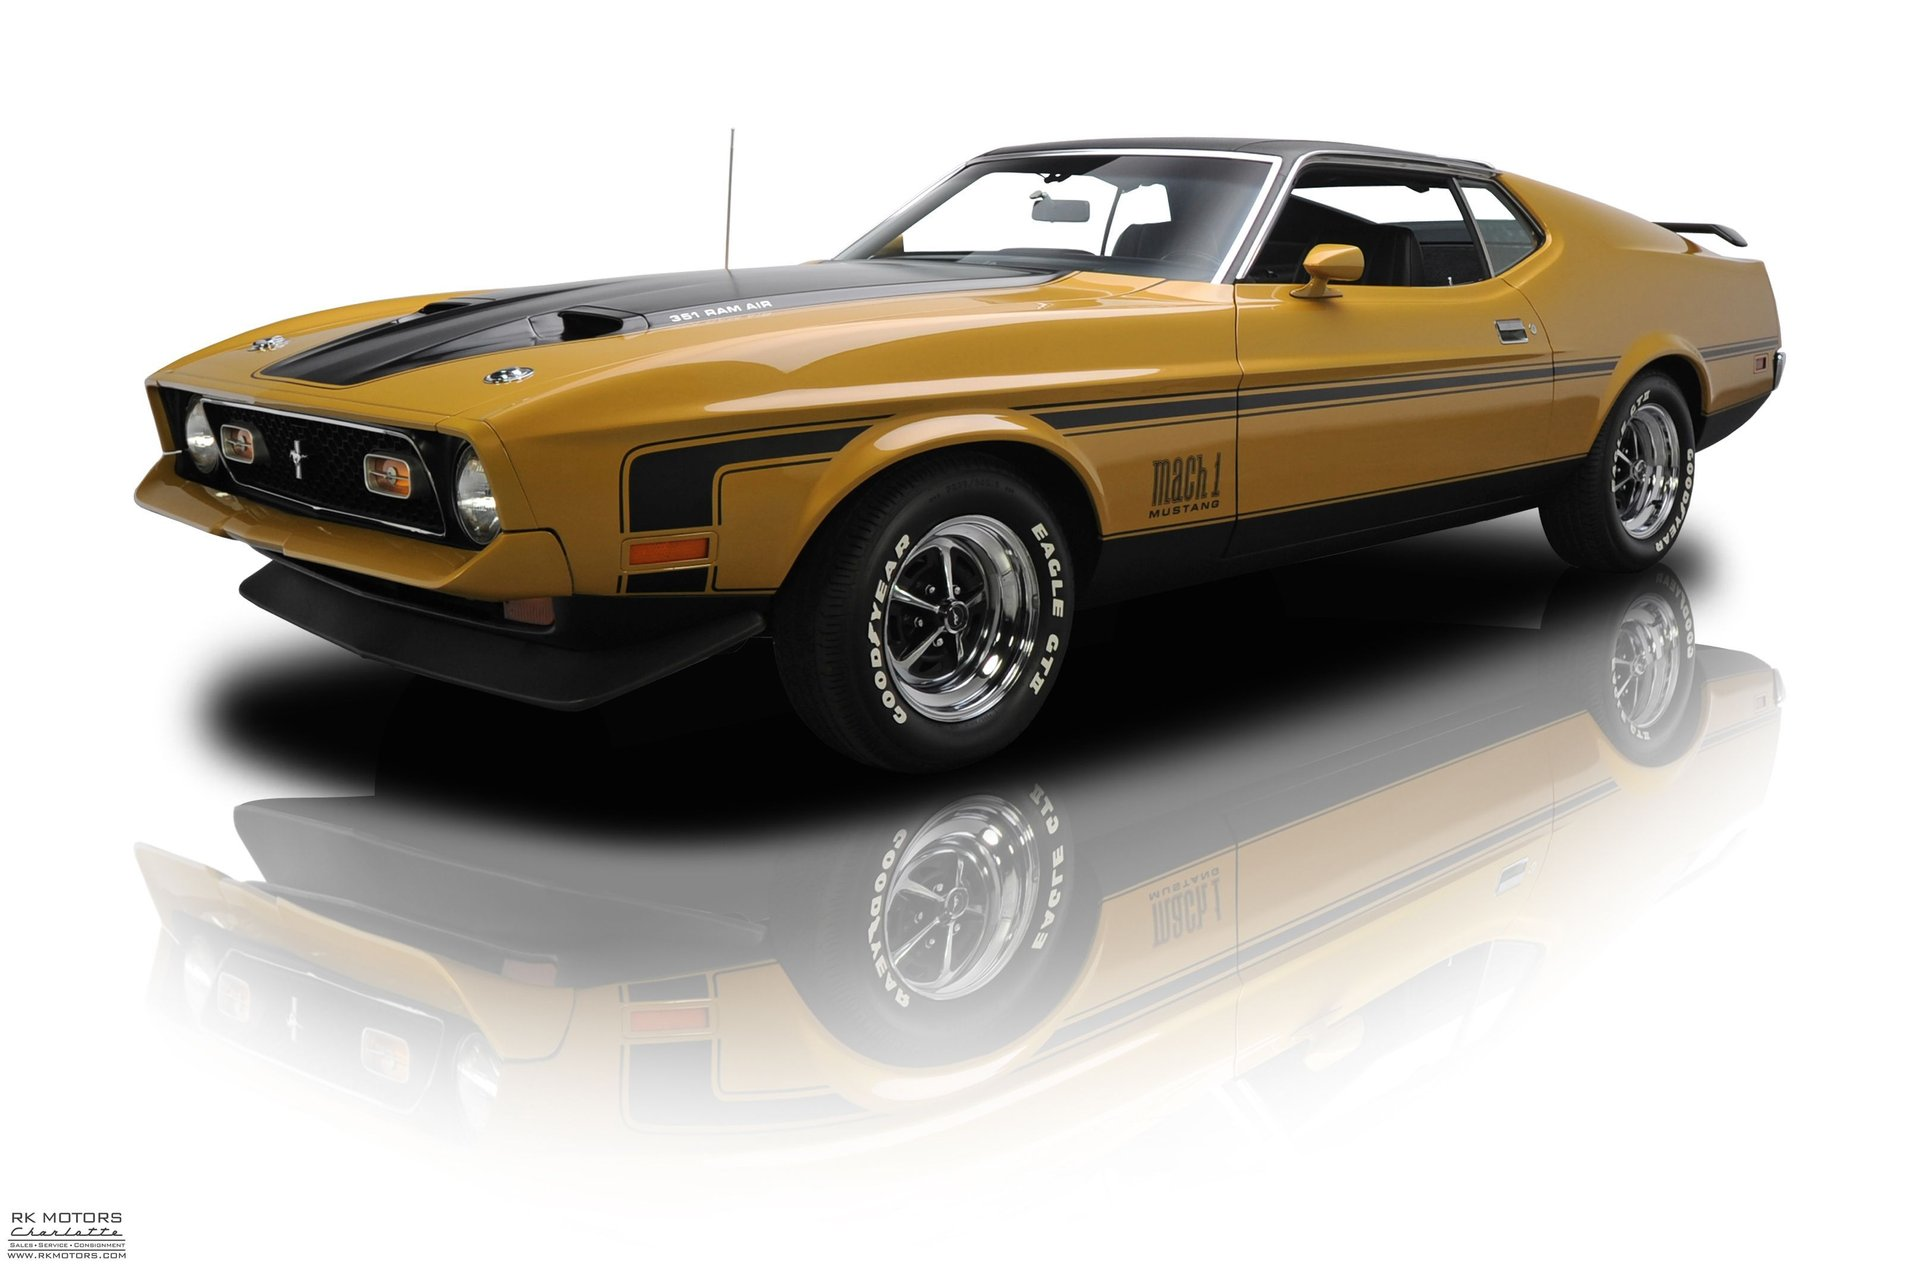 Frame up restored mustang mach 1 351 cobra jet 4 speed